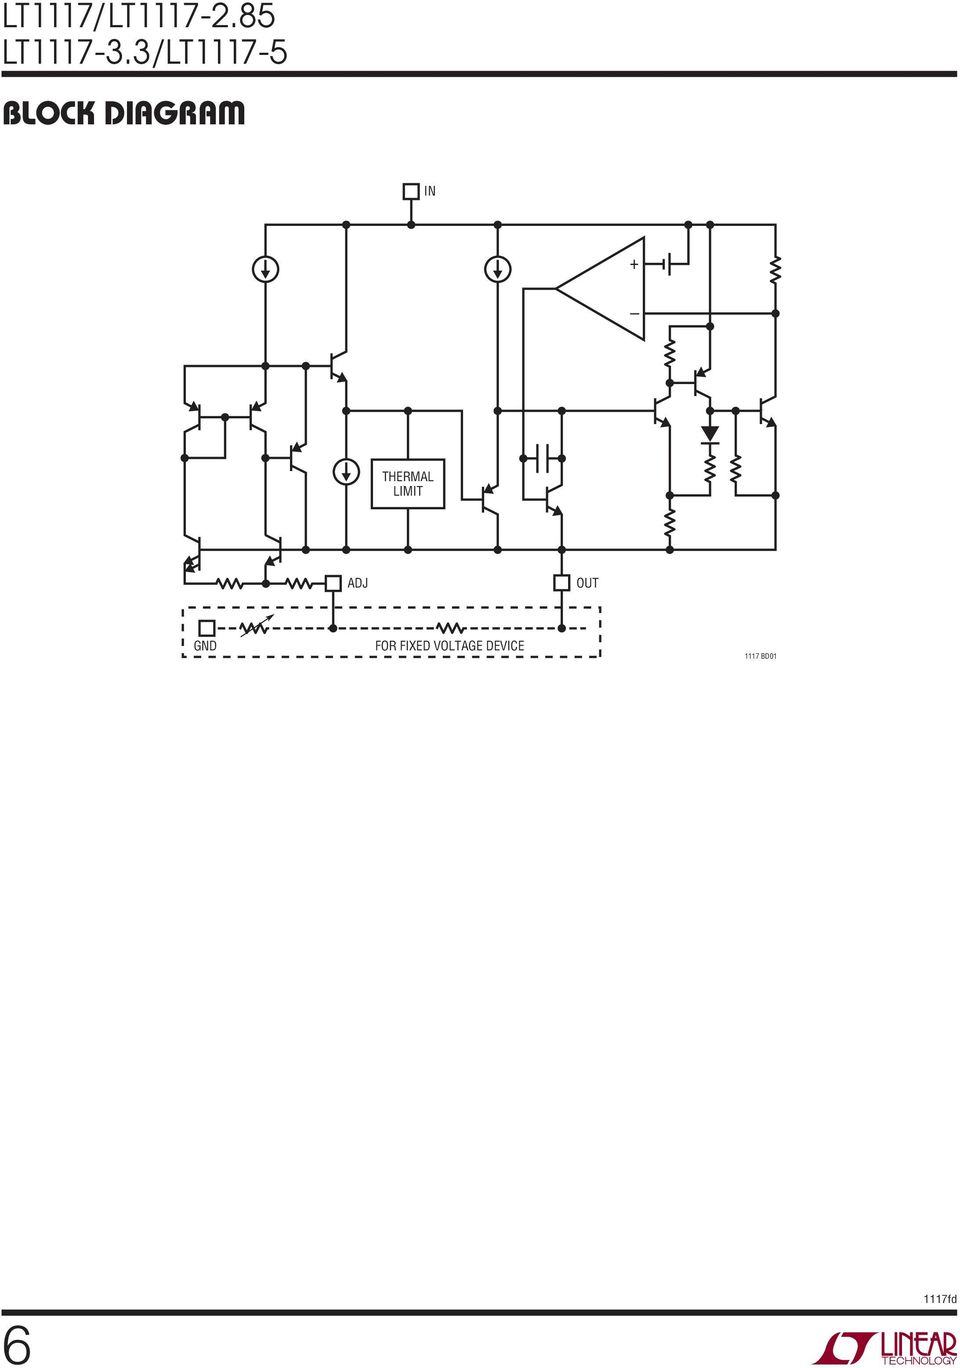 Lt1117 Lt Ma Low Dropout Positive Regulators Adjustable And High Current Regulator Circuit Diagram Using Lm117 7 Applications Formation The Famiy Of 3 Termina Reguators Are Easy To Use They Protected Against Short Therma Overoads